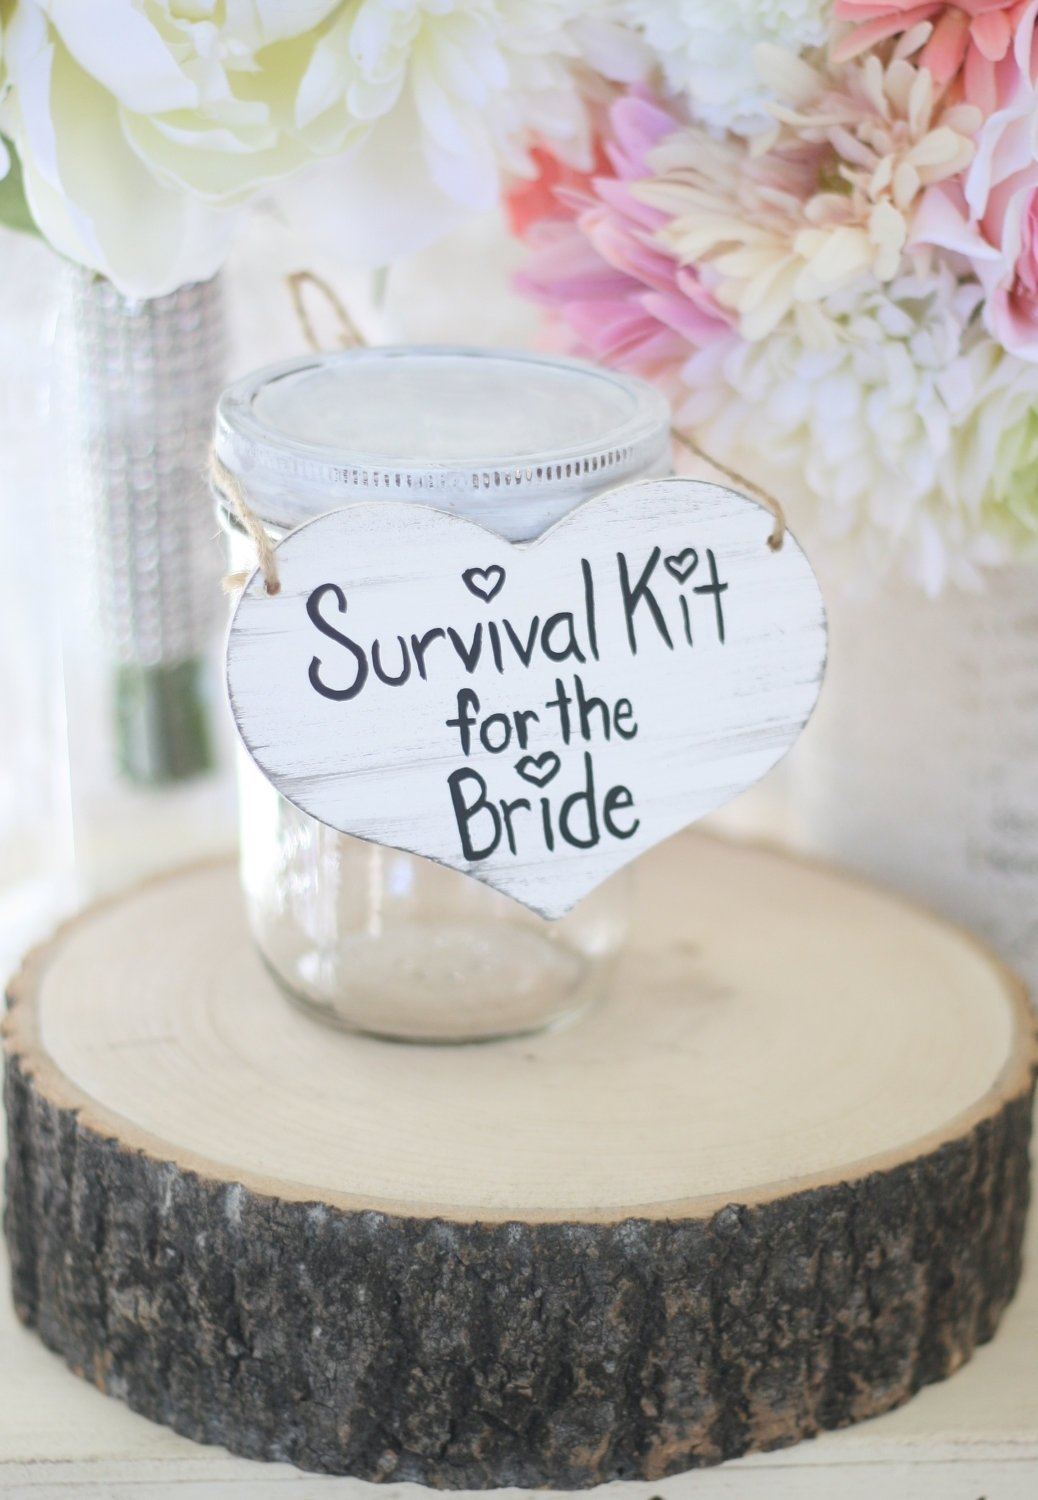 10 Cute Ideas For Bridal Party Gifts country wedding party favors wedding ideas uxjj 2020